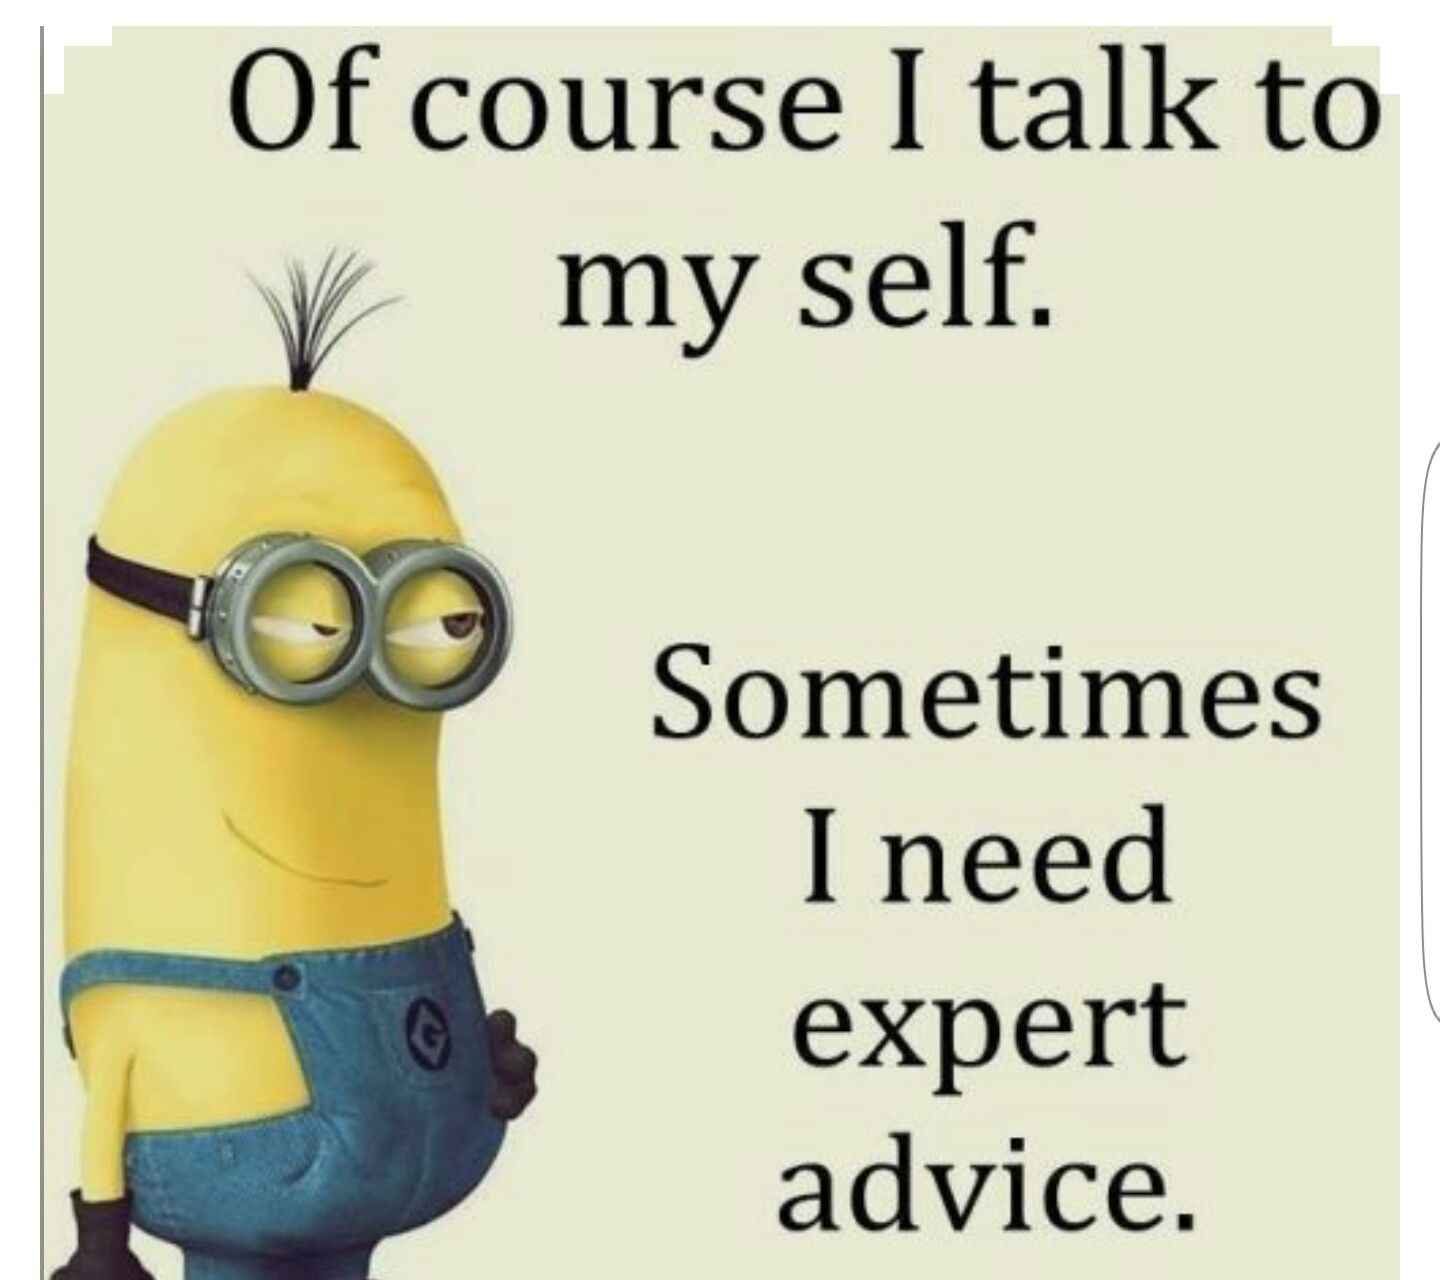 Funniest Minion Quotes Of The Week   Funny Minion Pics U0026 Quotes   Minion  Quotes